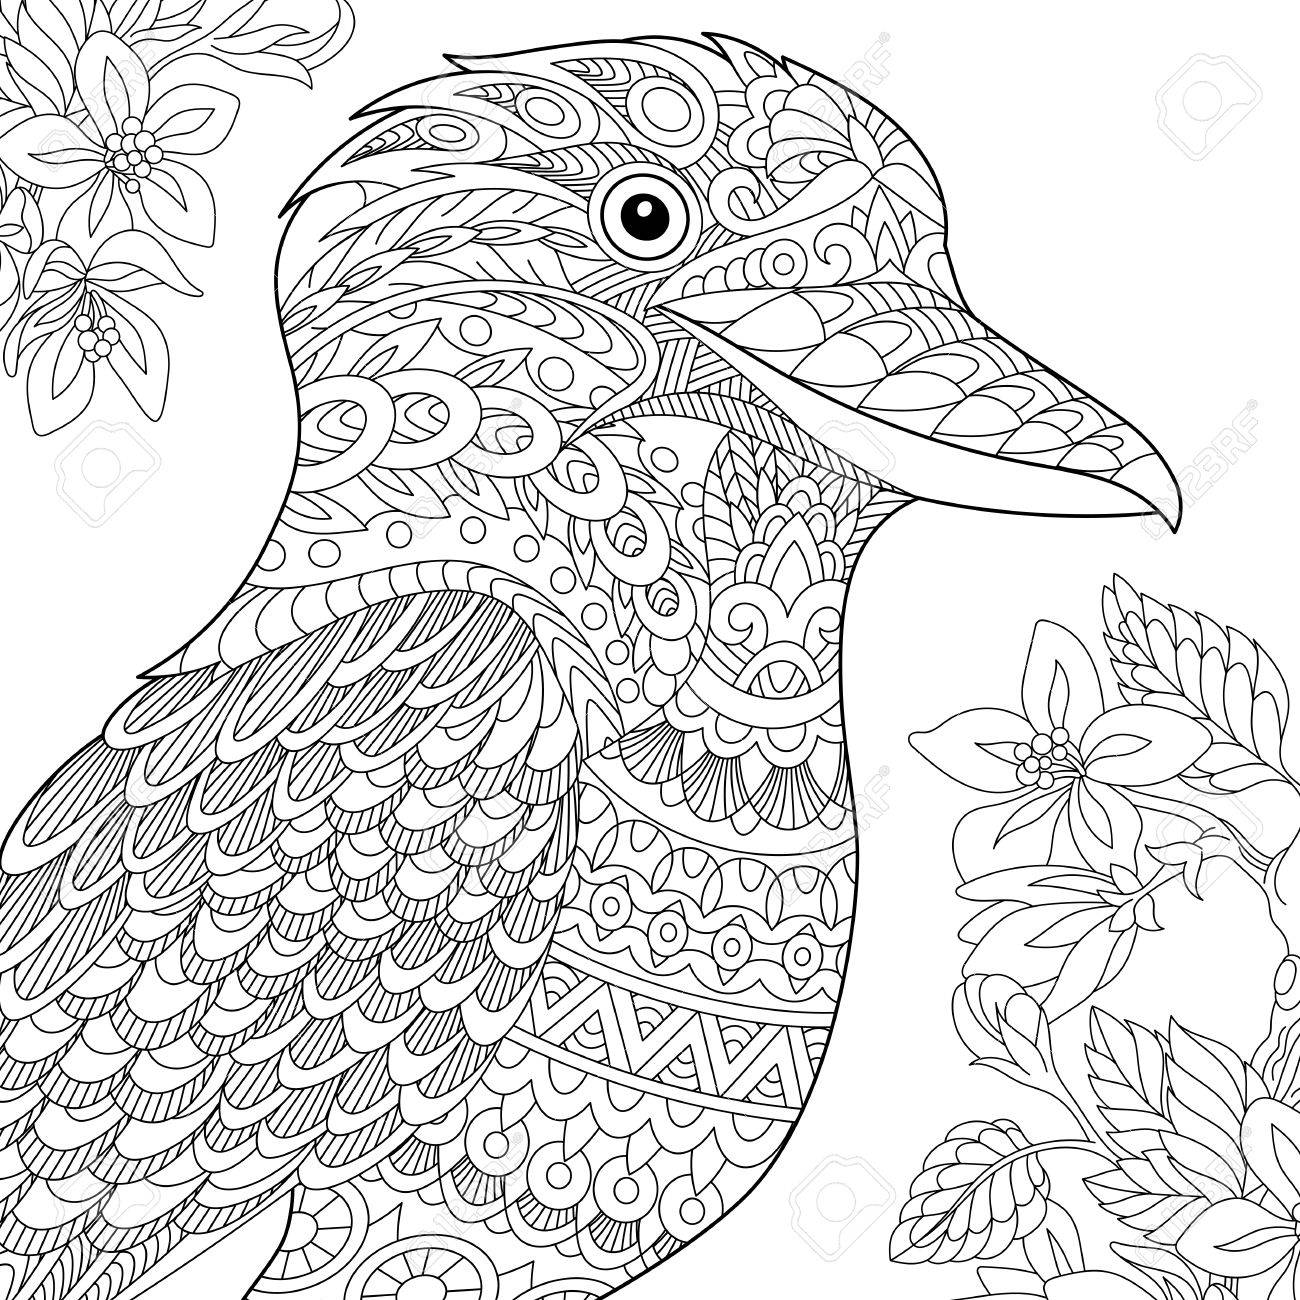 Coloring Page Australian Kookaburra Bird Freehand Sketch Drawing For Adult Antistress Book In